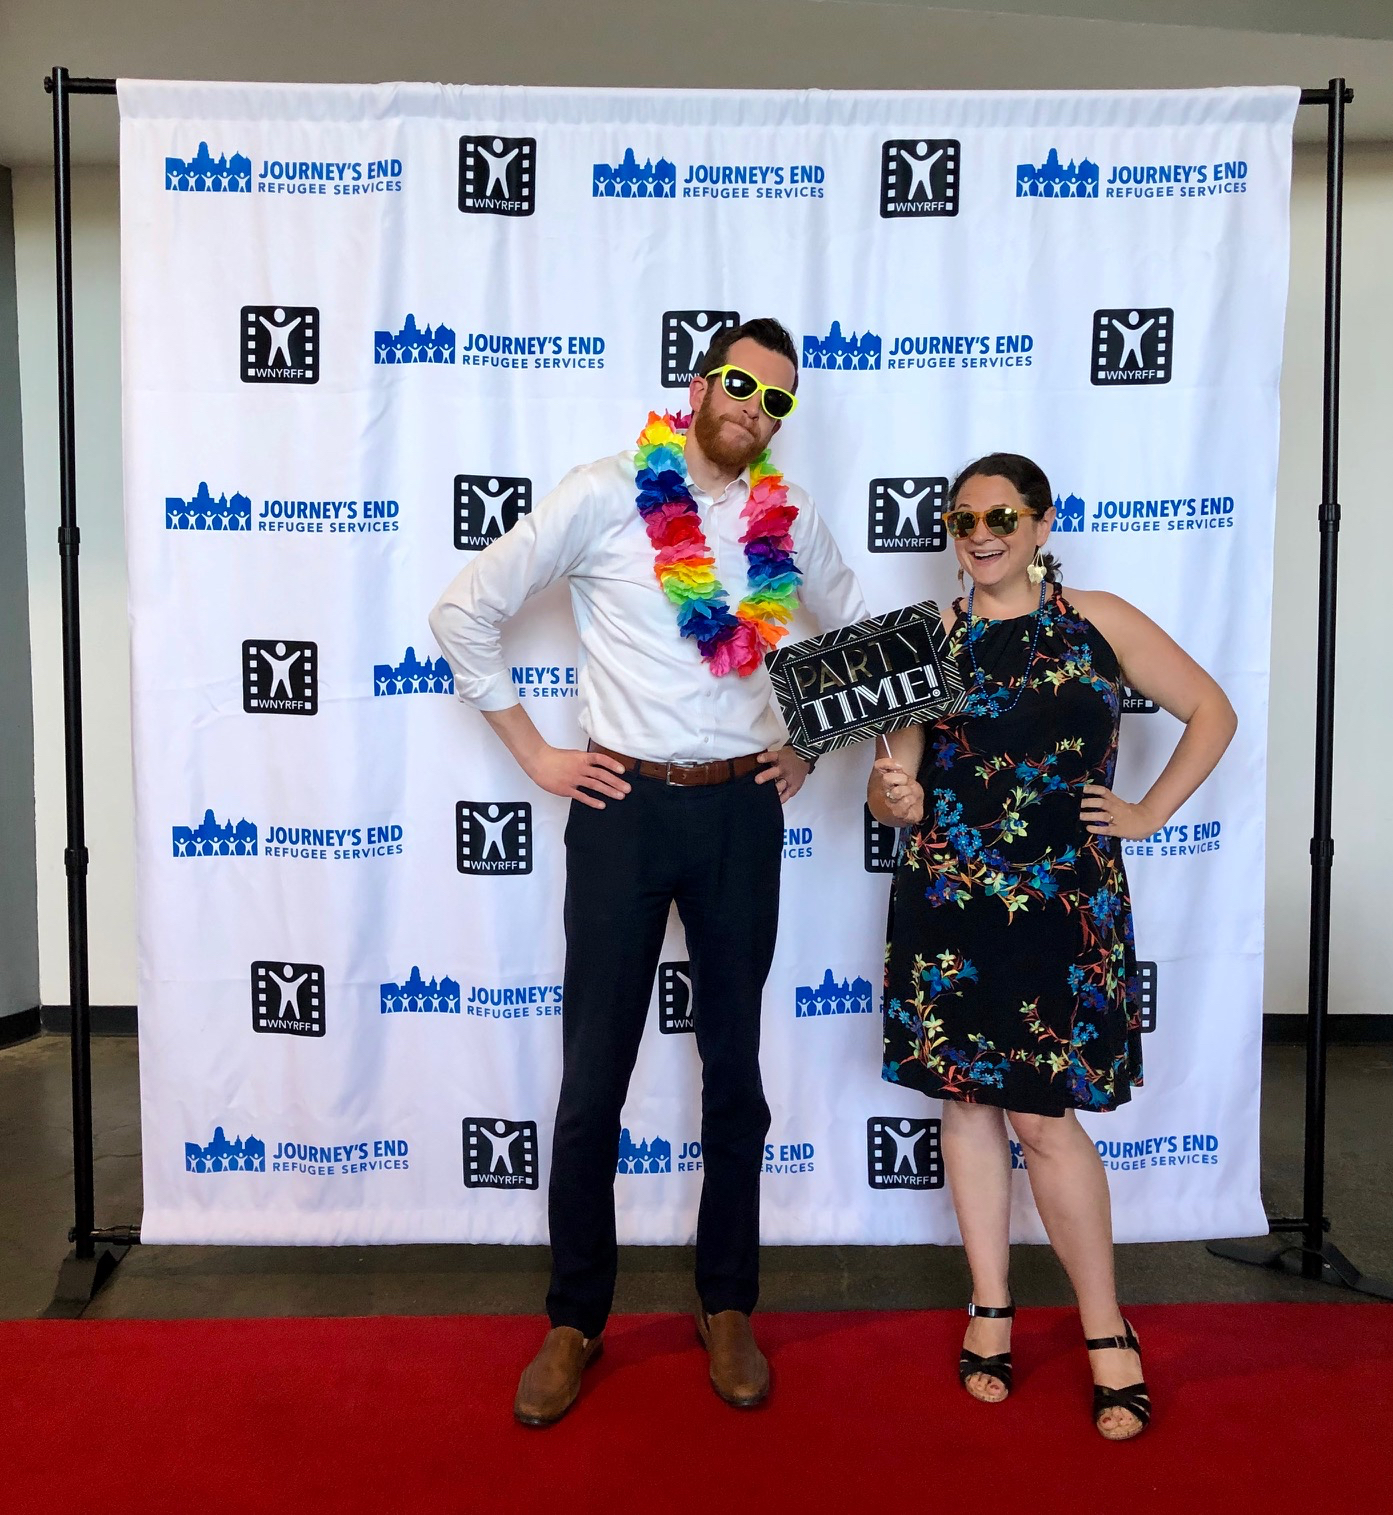 More fun on the red carpet with JERS Board member Pat McNally and JERS Executive Director Karen Andolina Scott!